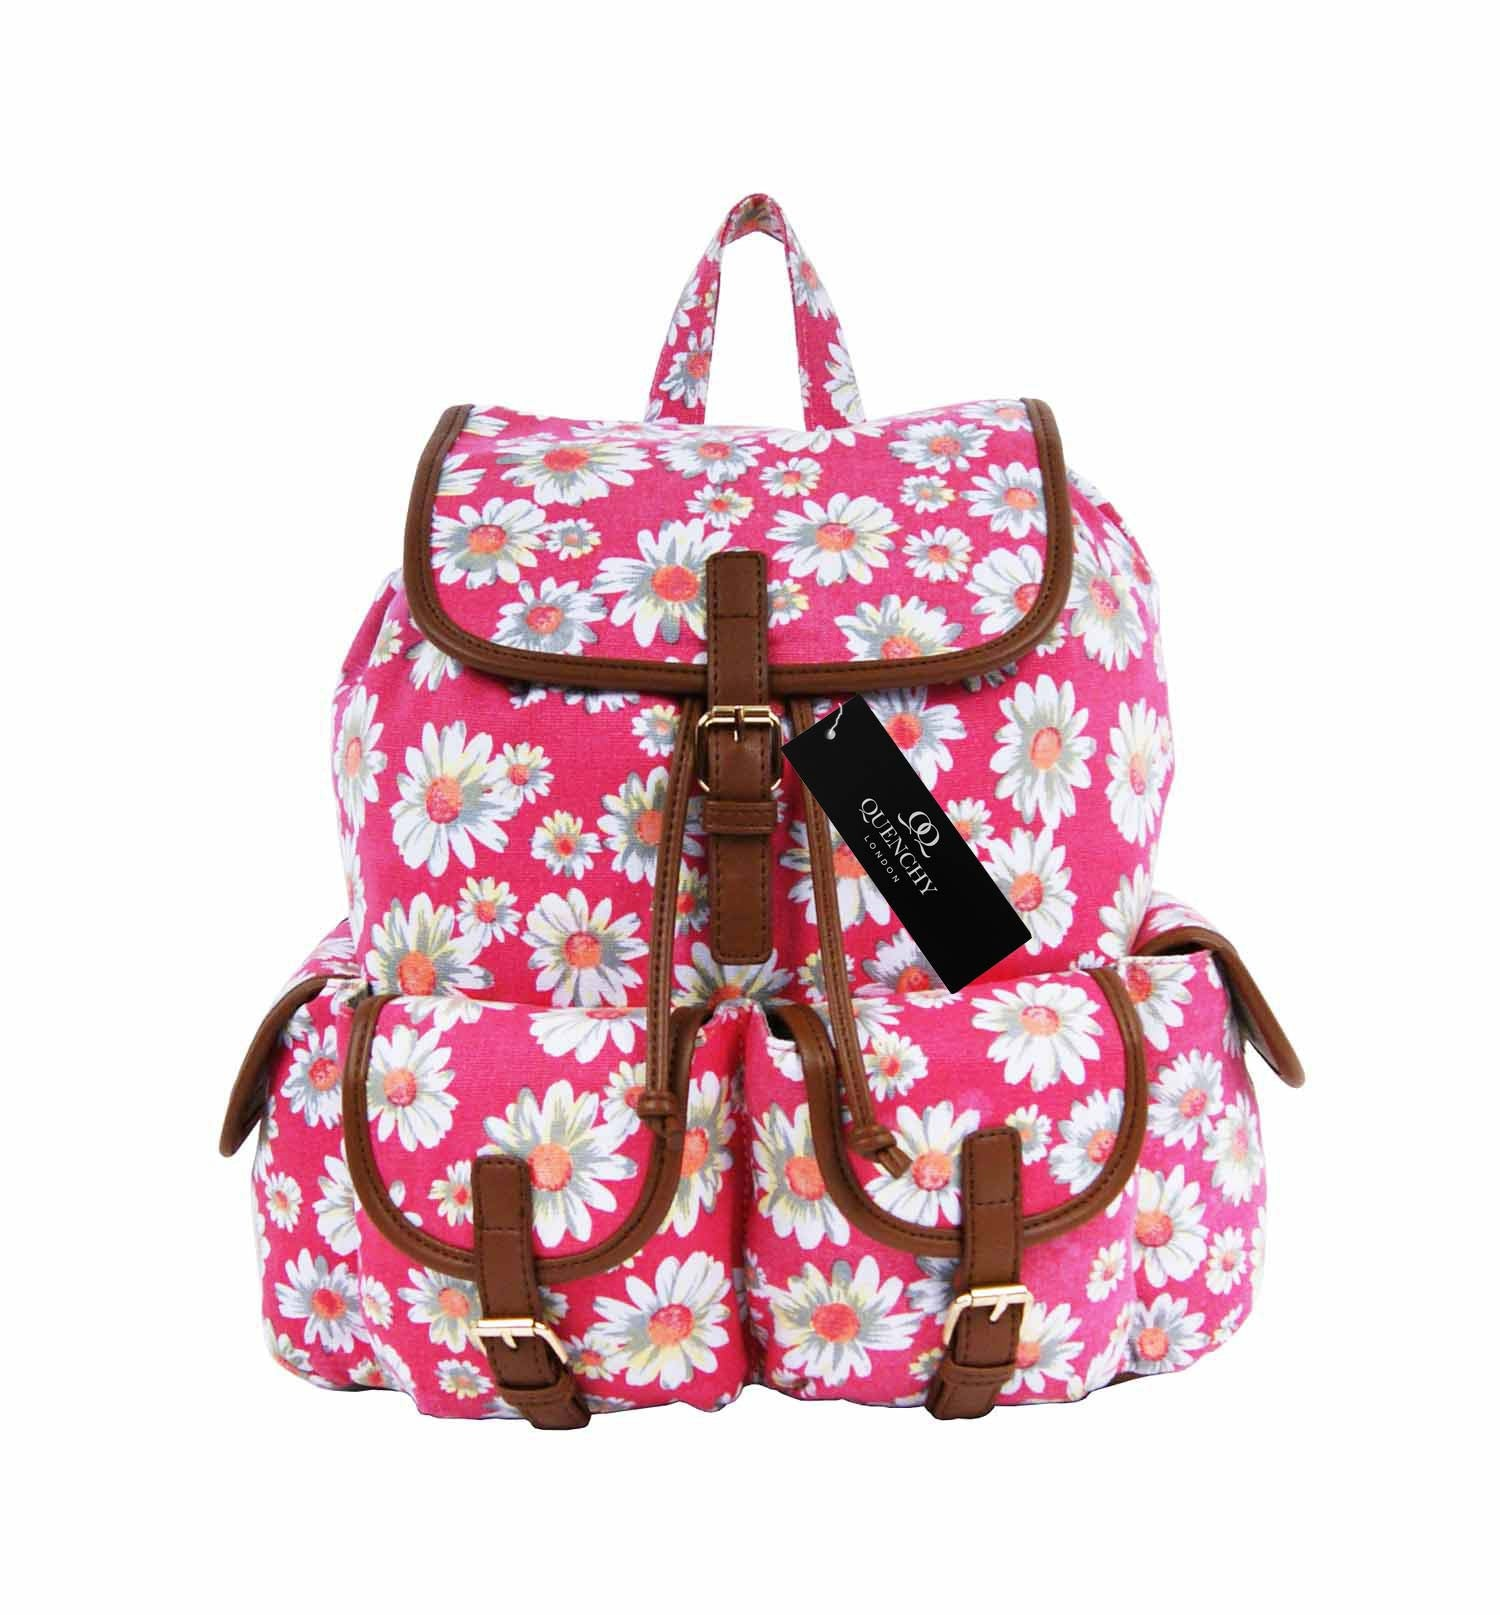 Daisy Floral Print Backpack Bag QL8151P front view